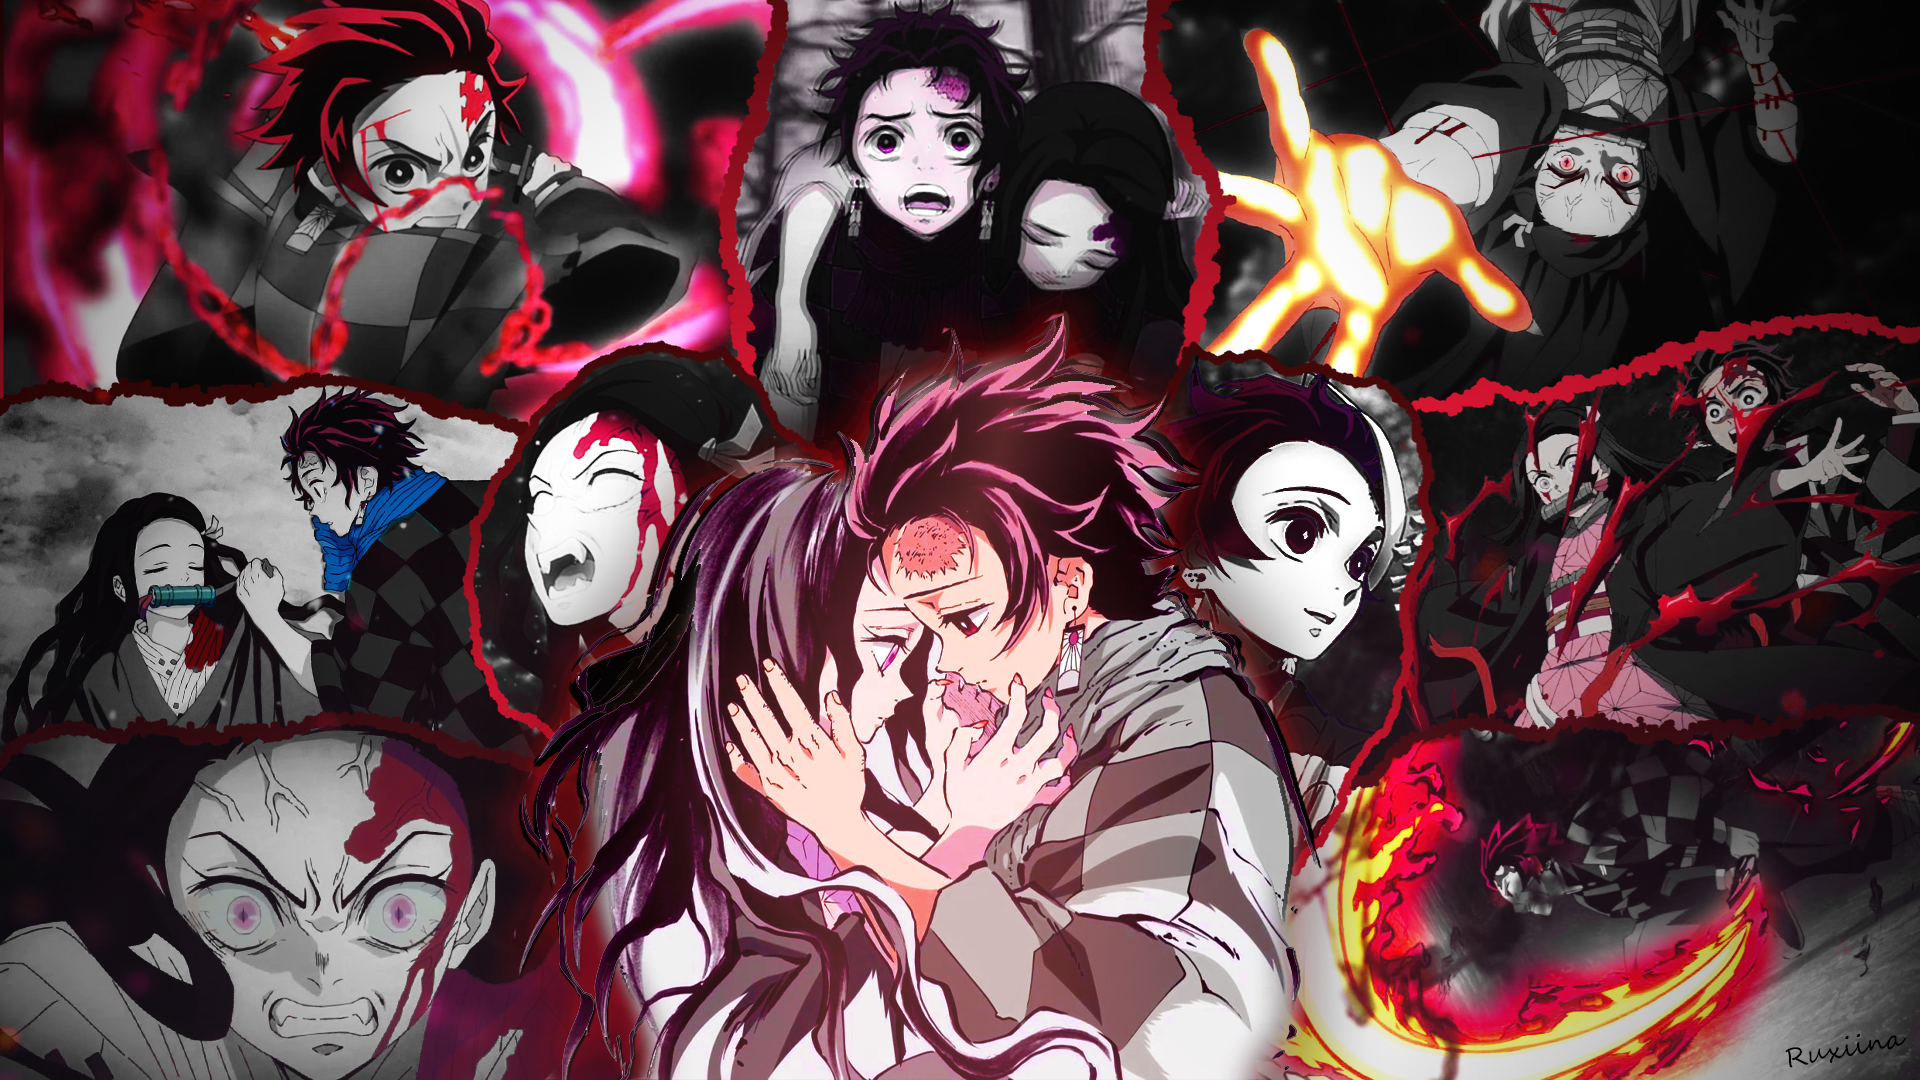 Demon Slayer Kimetsu No Yaiba Hd Wallpaper Background Image